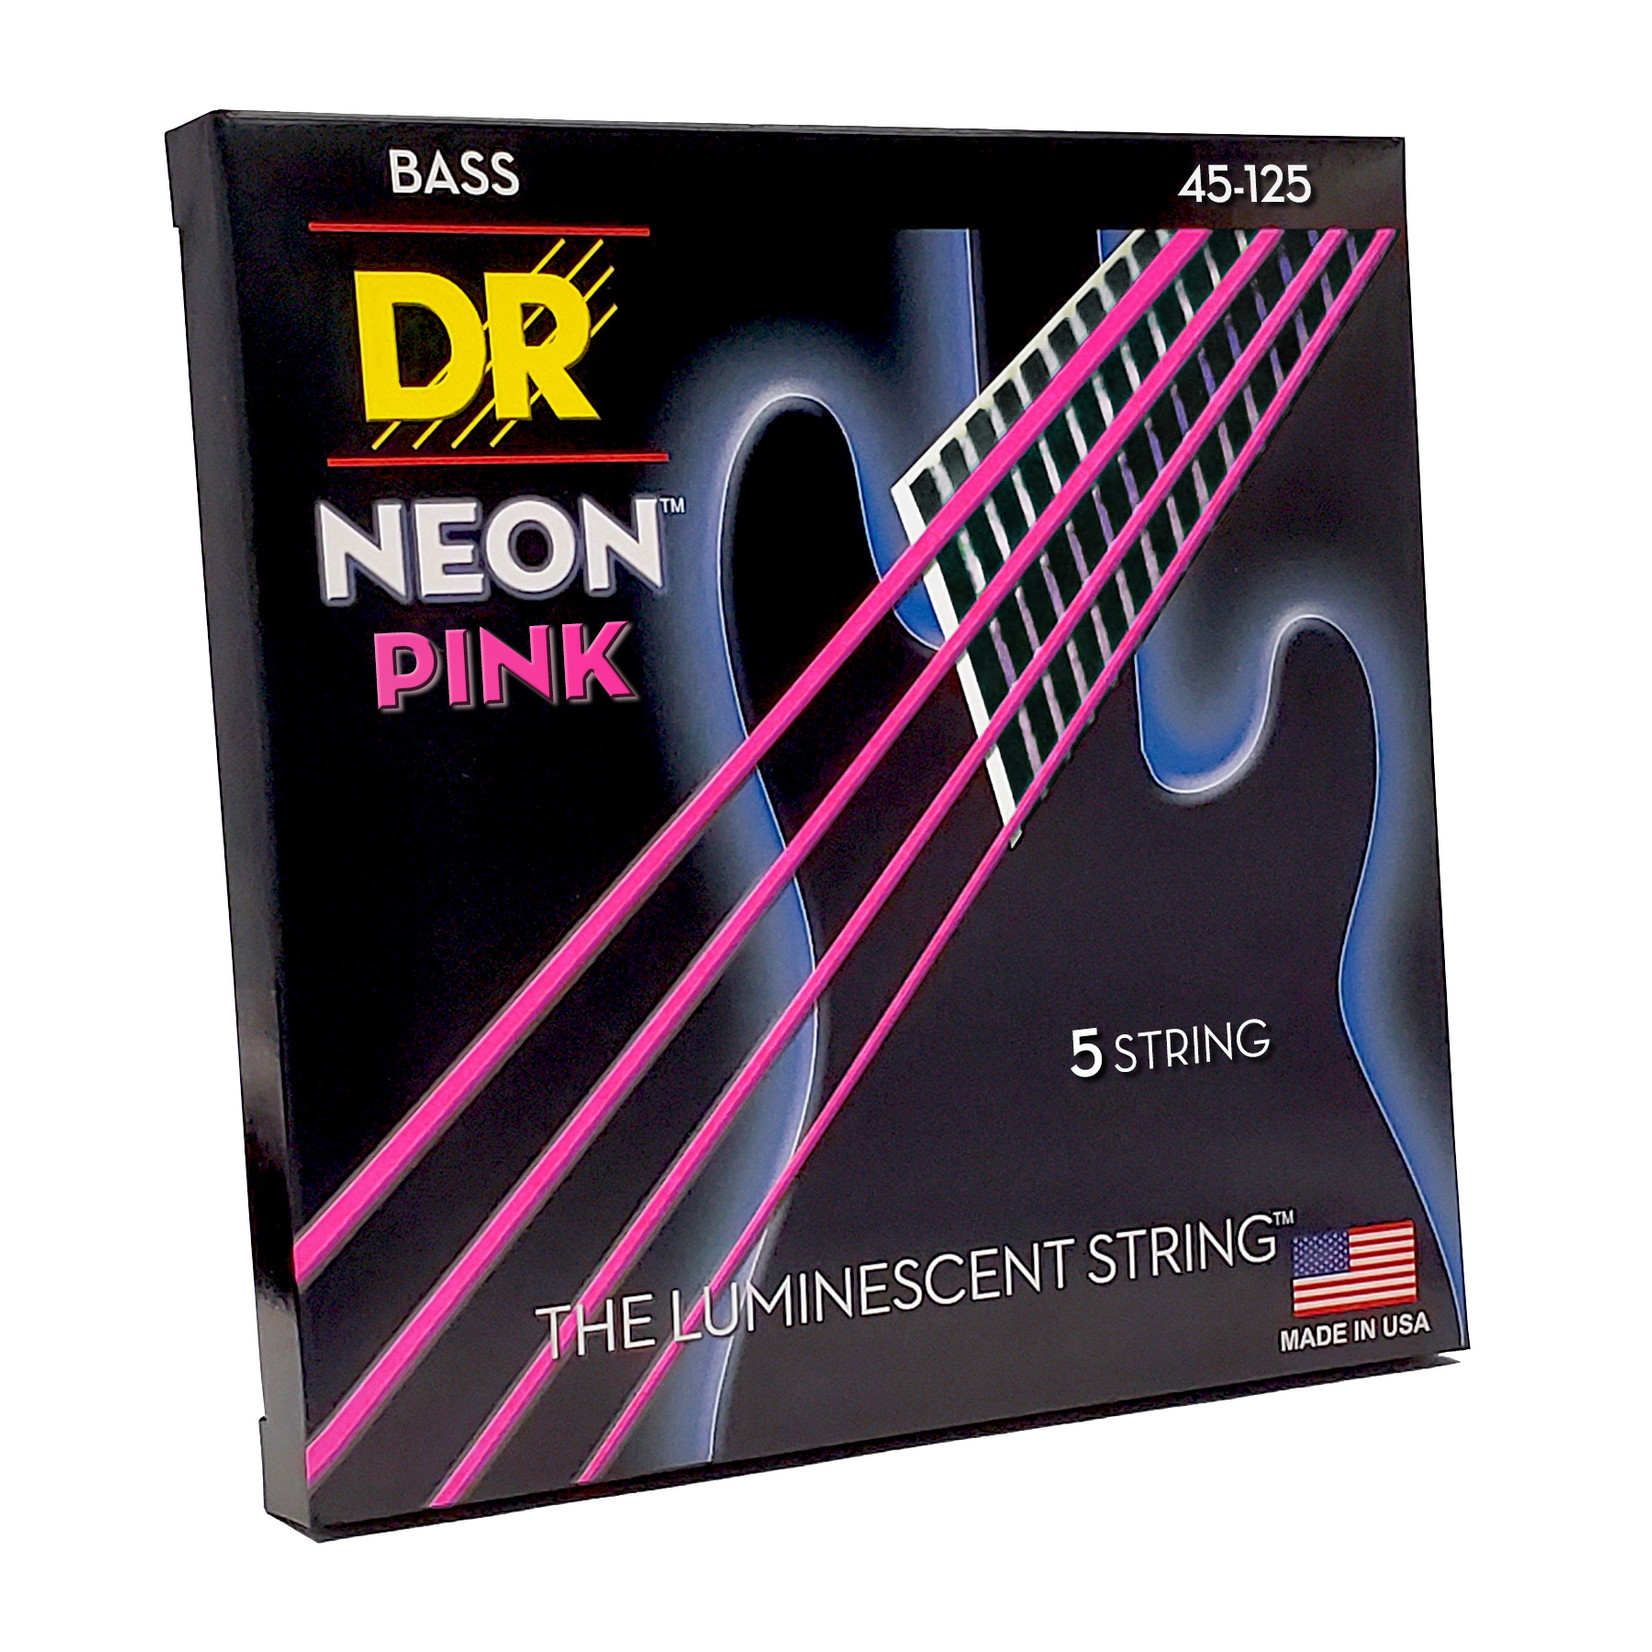 DR Strings DR Strings Neon Pink Bass Strings 5-String Set (45-125), K3 Coated, NPB5-45